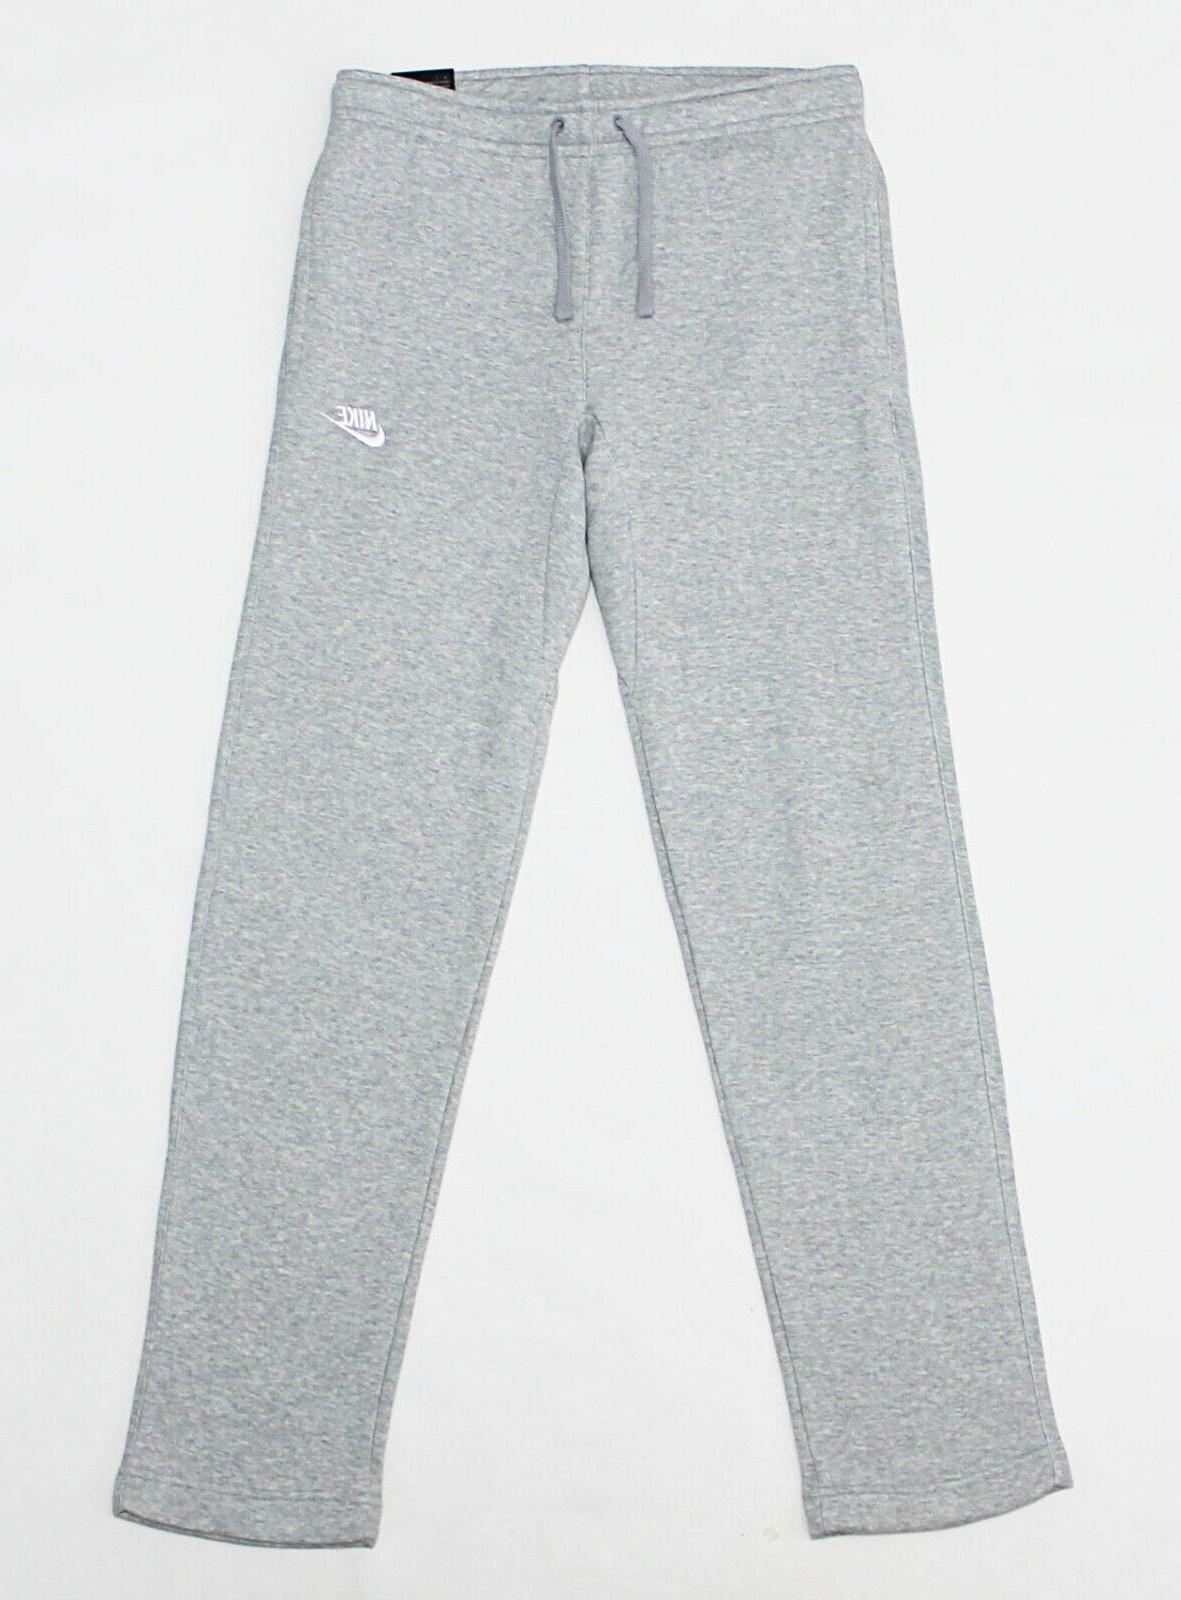 NWT NIKE Club Men's Heather Standard-Fit Pocket Sweatpants Pants